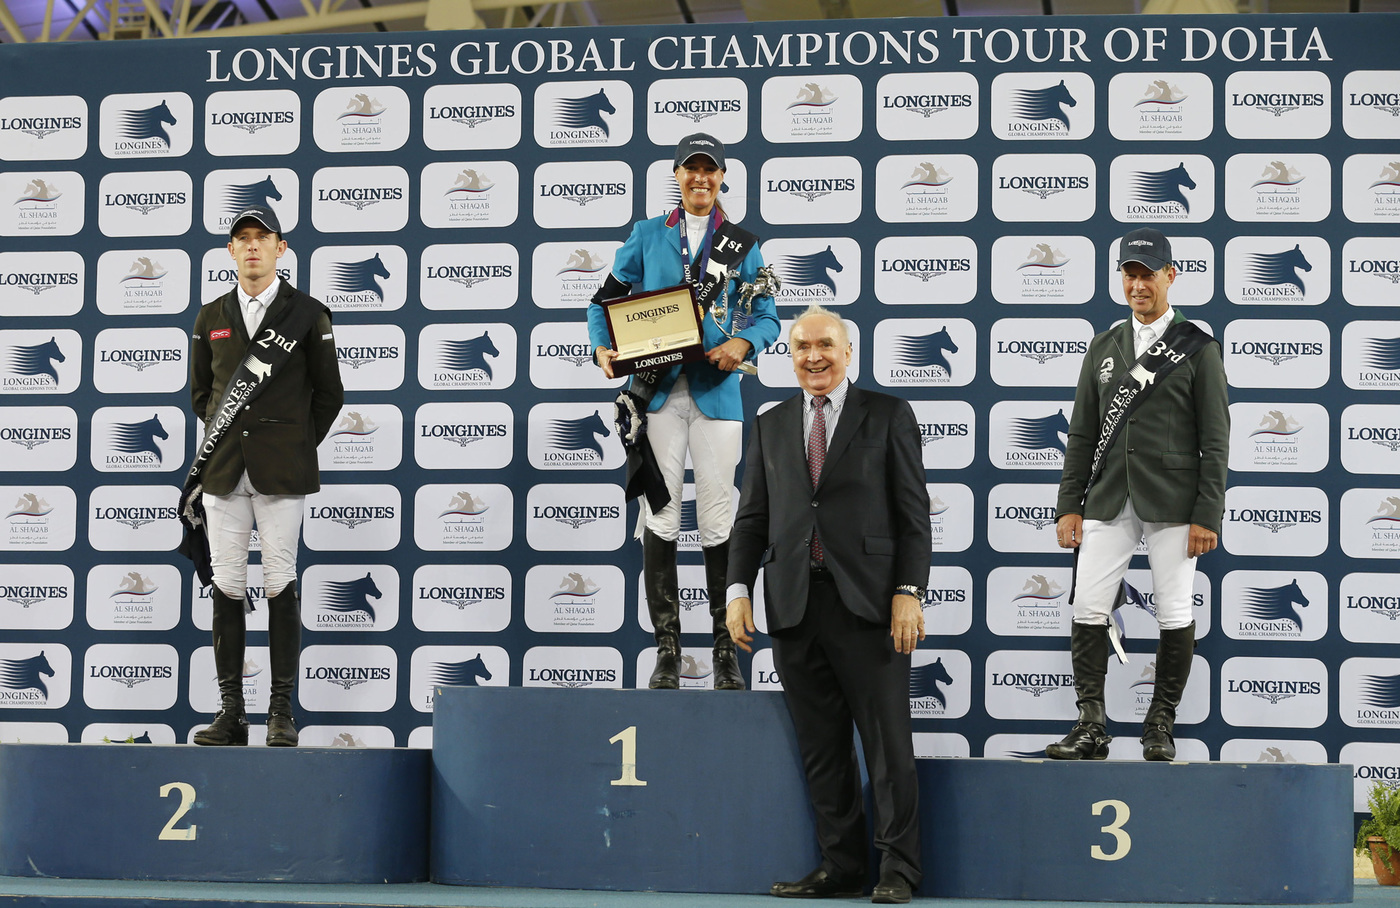 Longines Show Jumping Event: Doha hosts the finale of the 2015 Longines Global Champions Tour 1